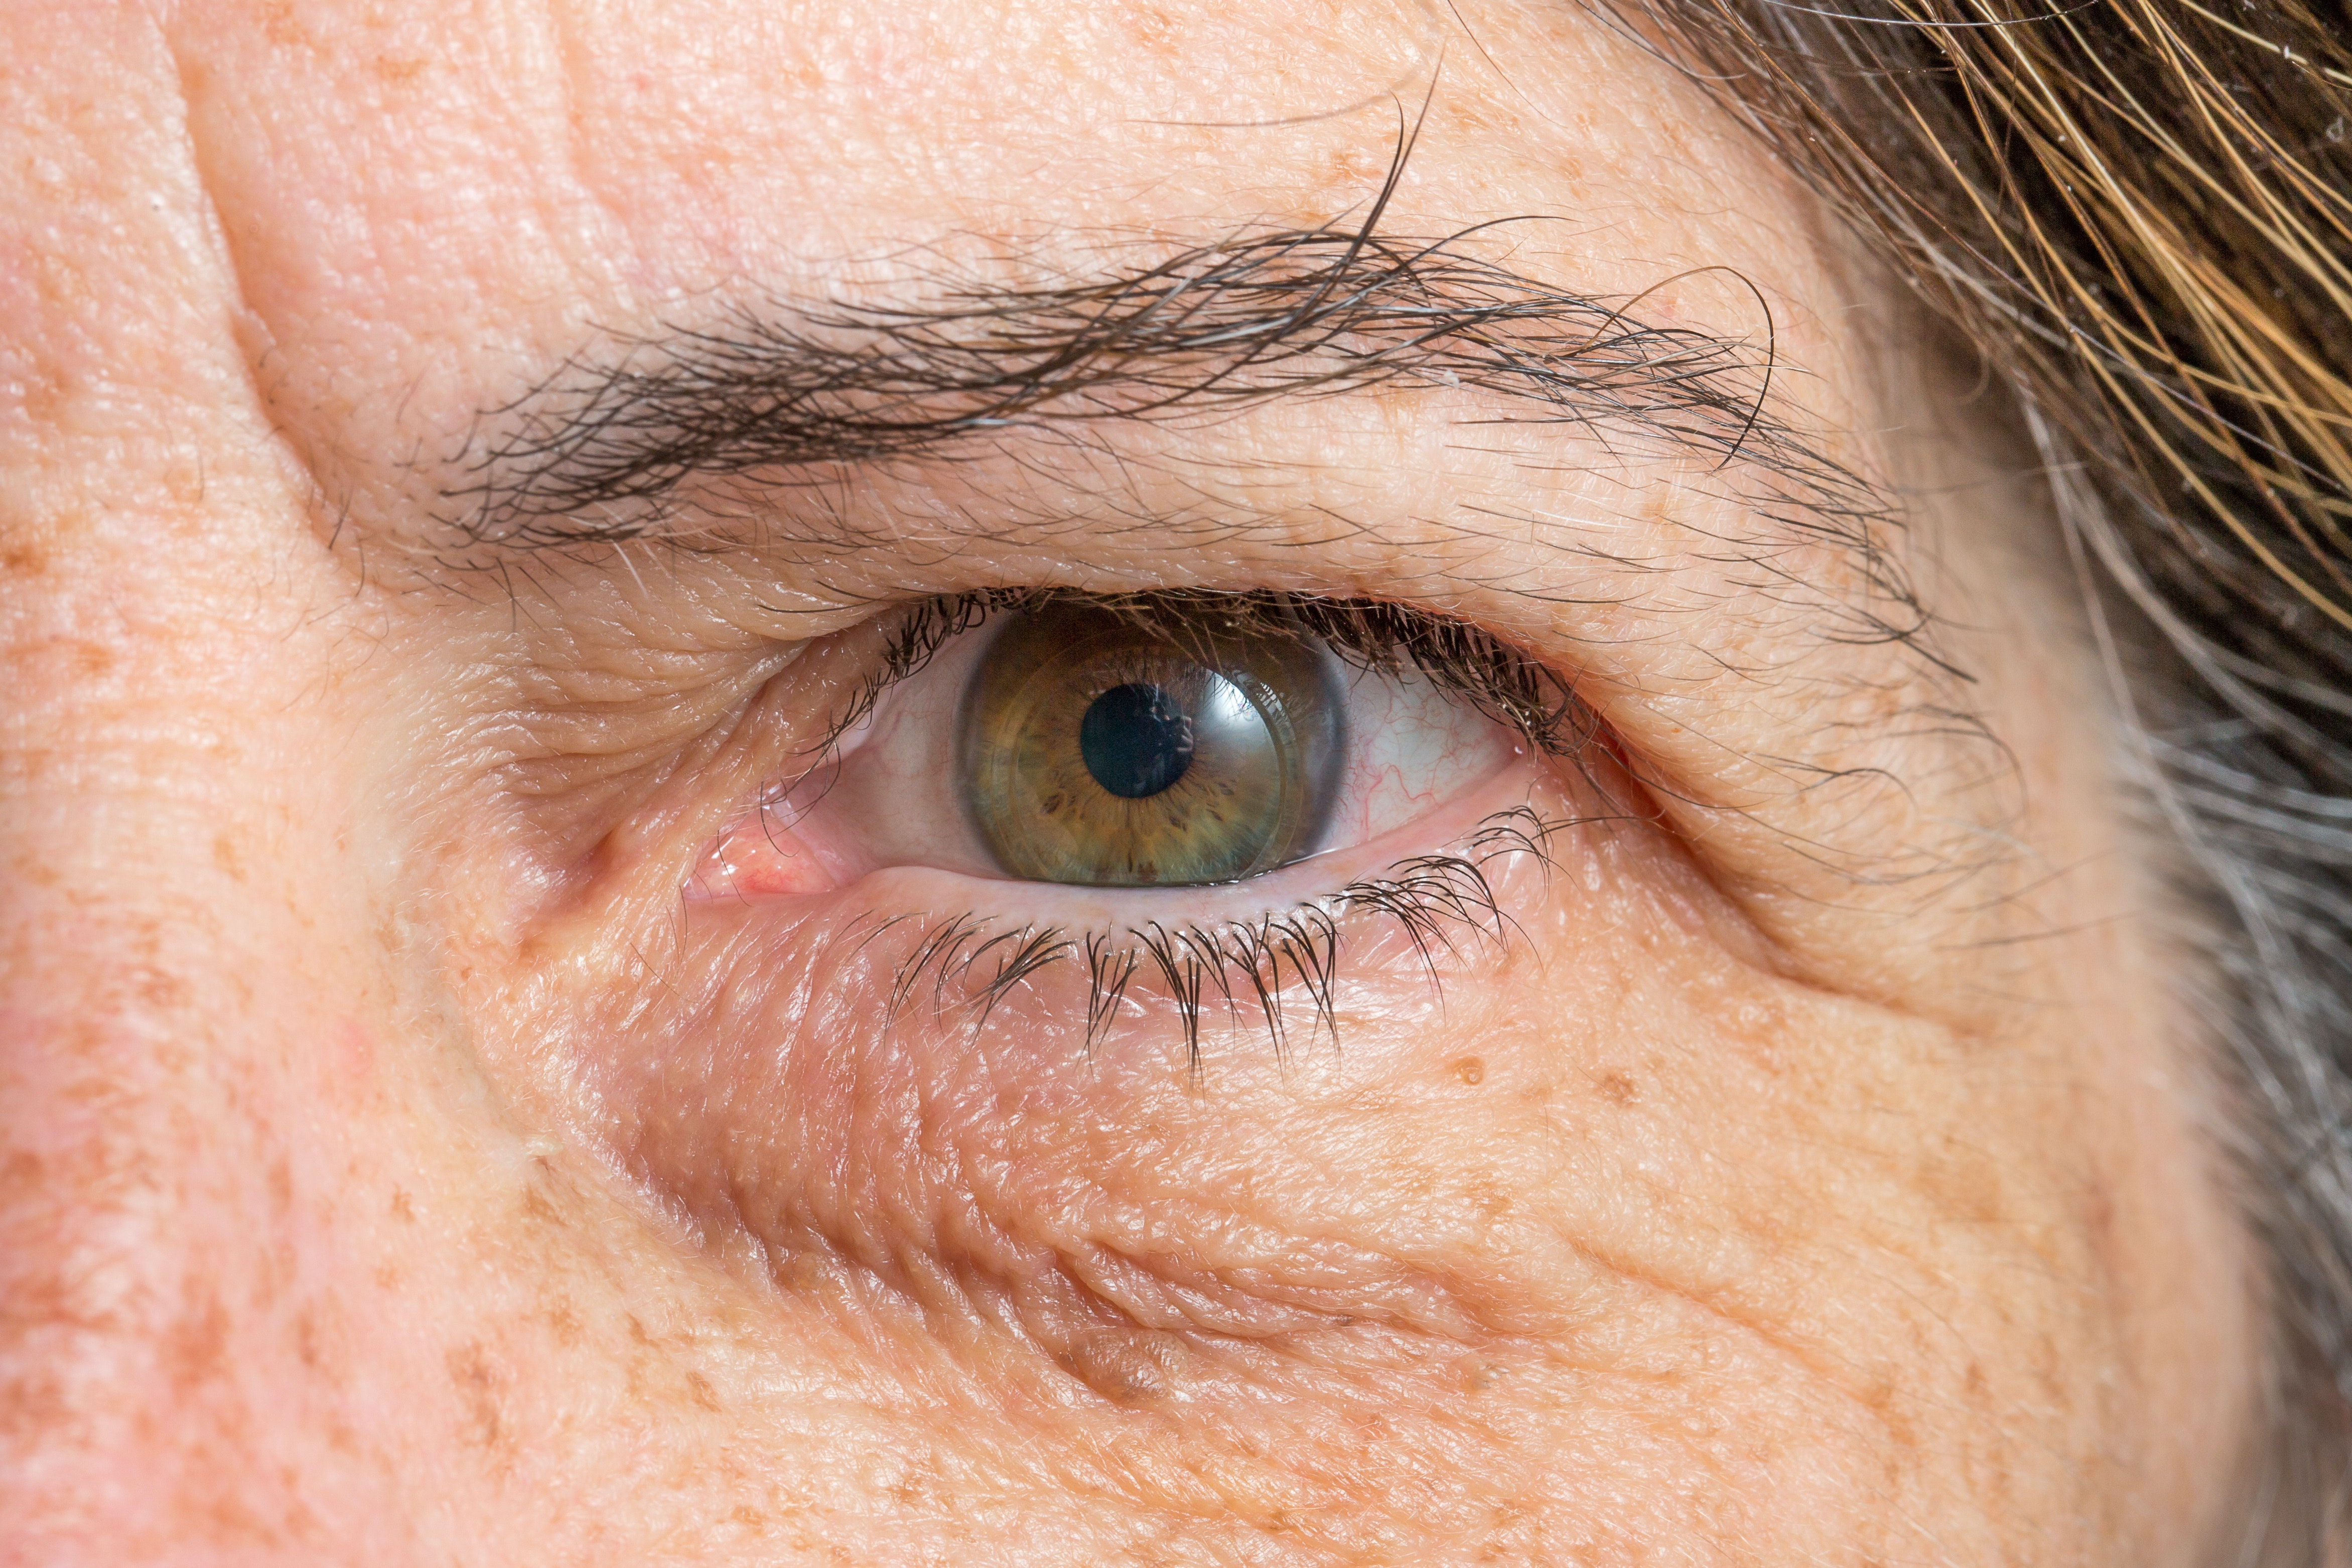 An image depicting a person suffering from drooping eyelid symptoms